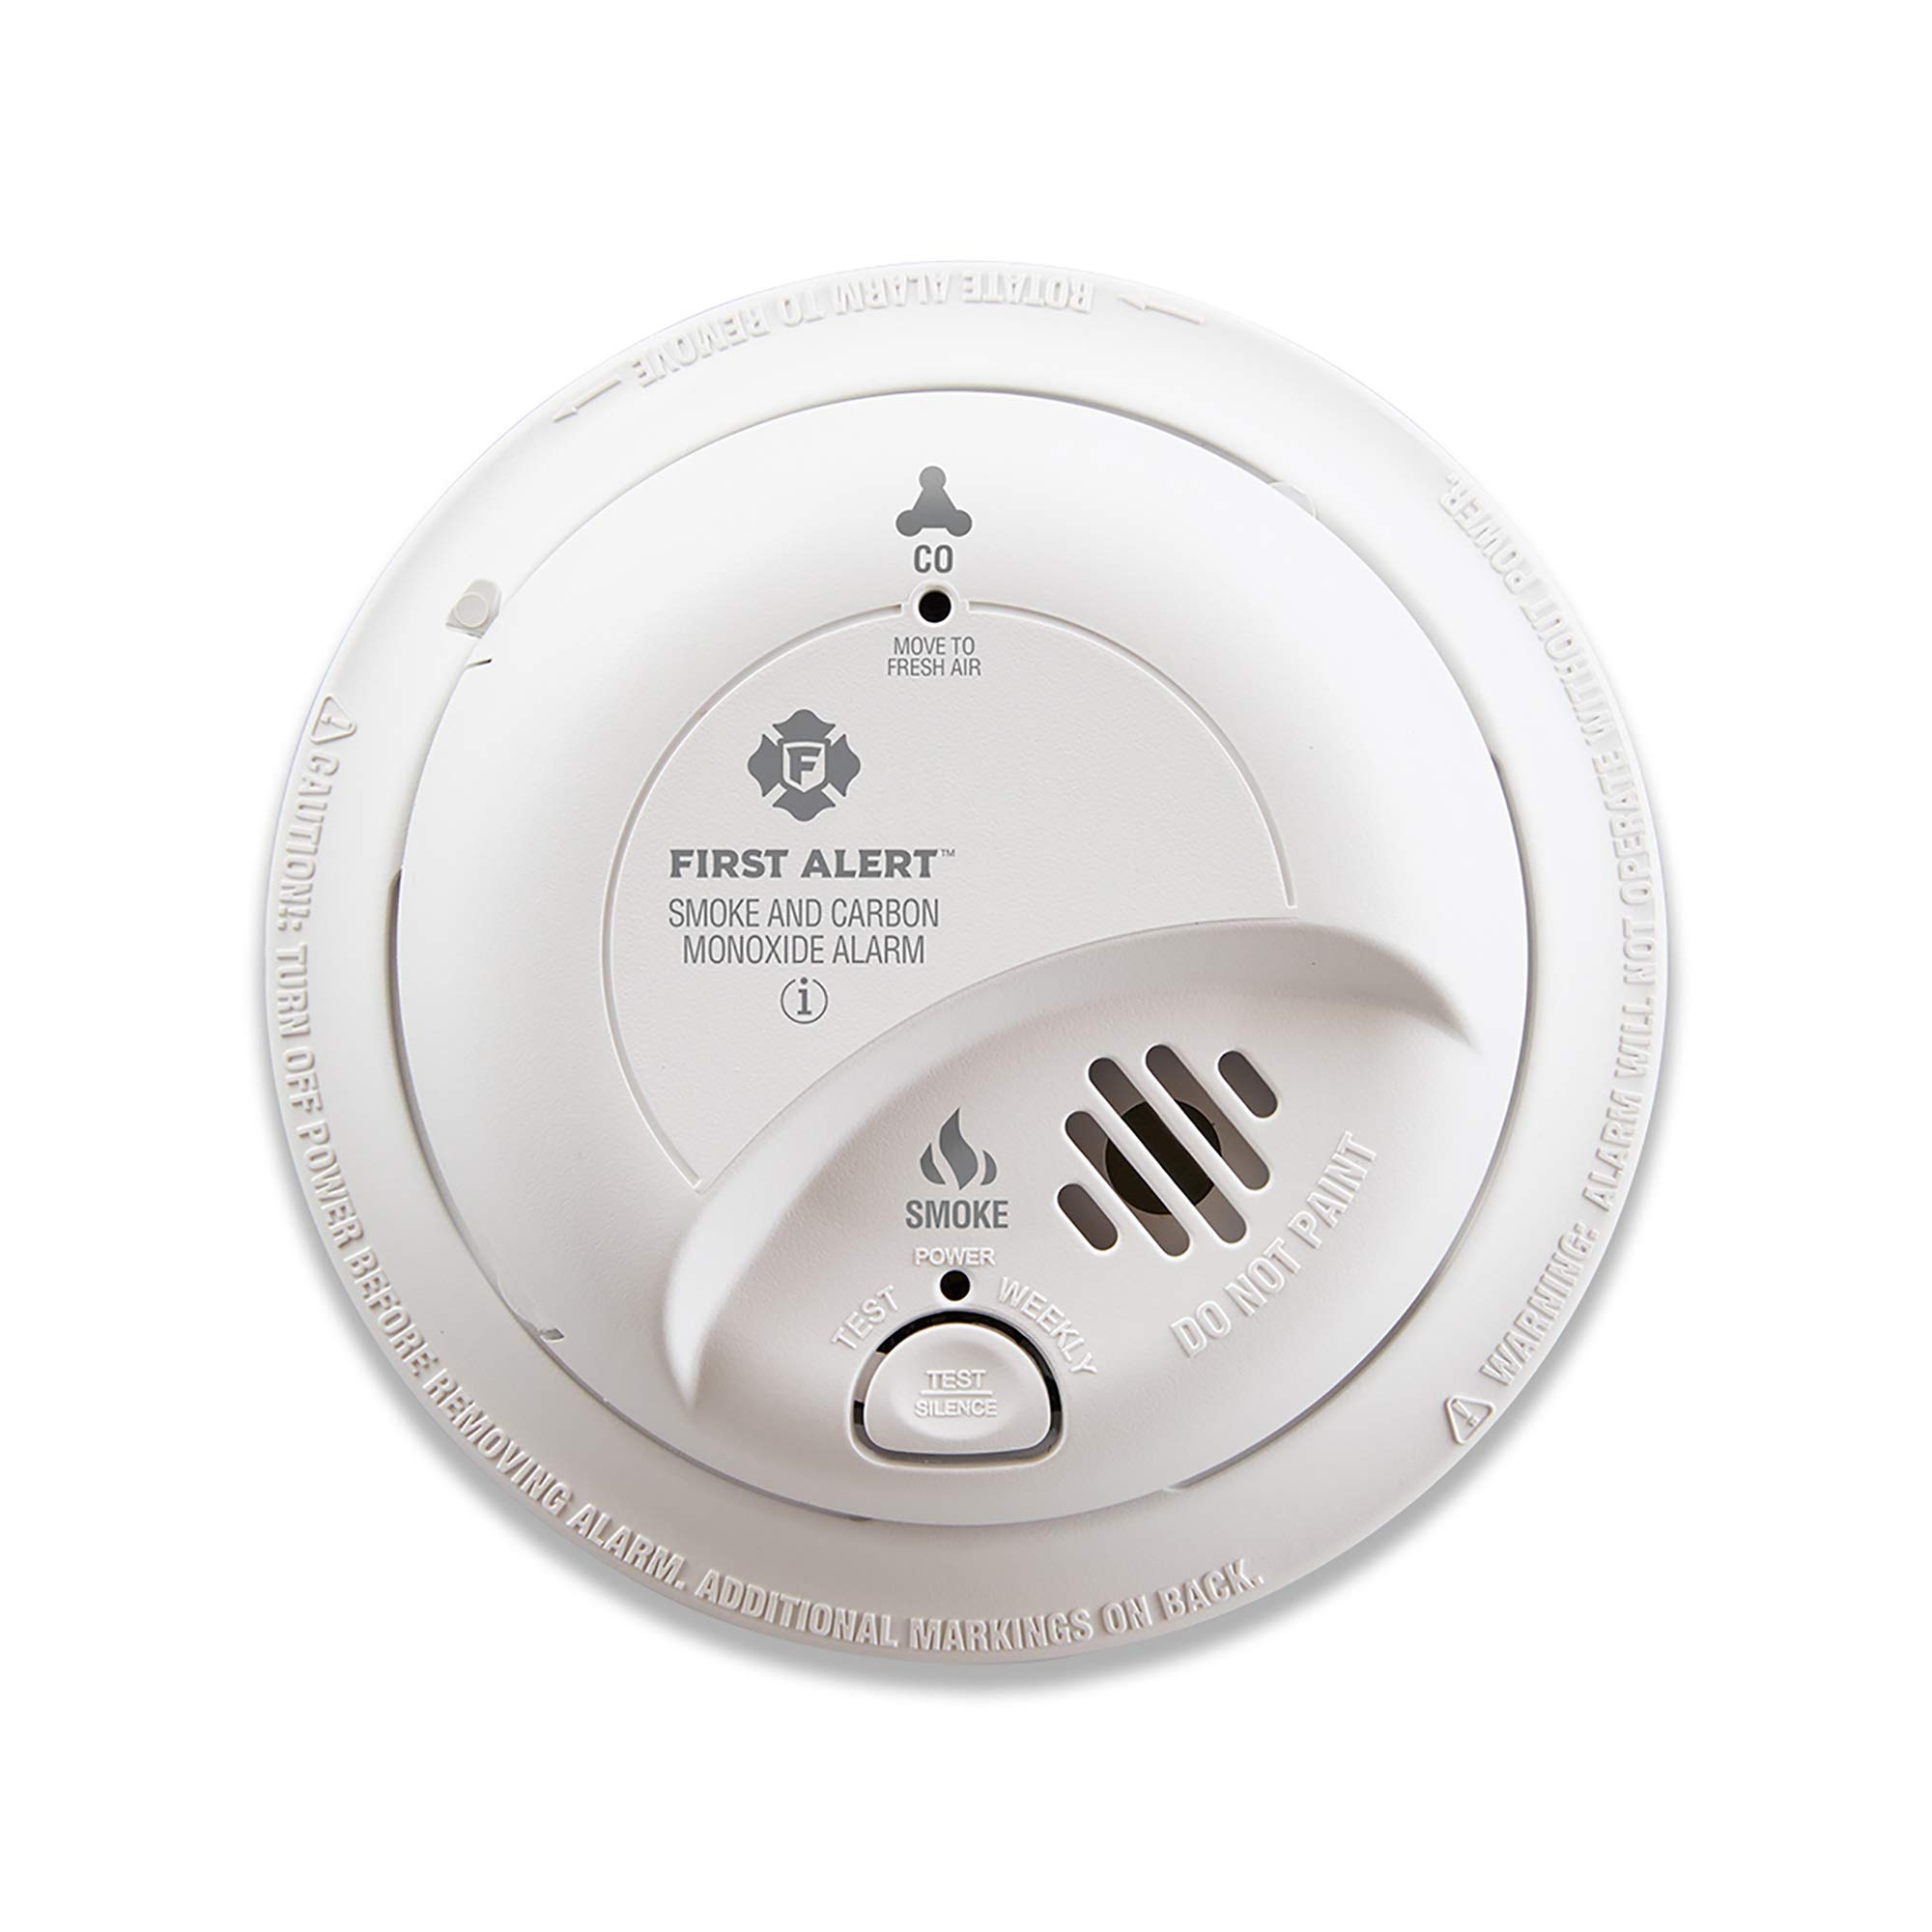 Smoke Detector Firex 120 1072b Wiring Diagram Trusted And Carbon Monoxide Alarm Amazon Com 1070 B Replacement